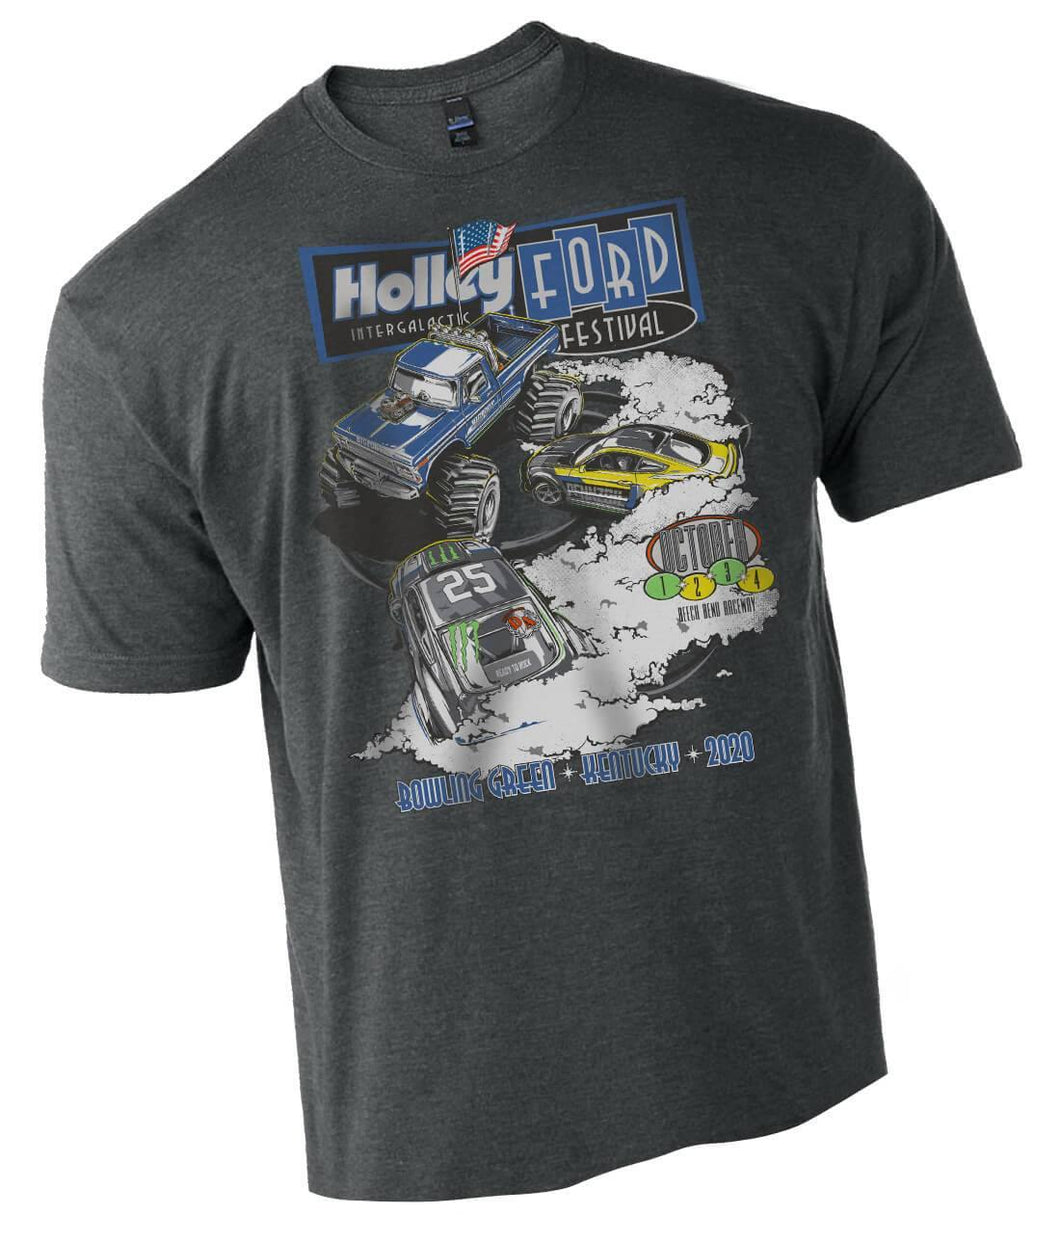 2020 Ford Fest Big Foot Toddler Tee - Large logo on front only. - 10275-4THOL